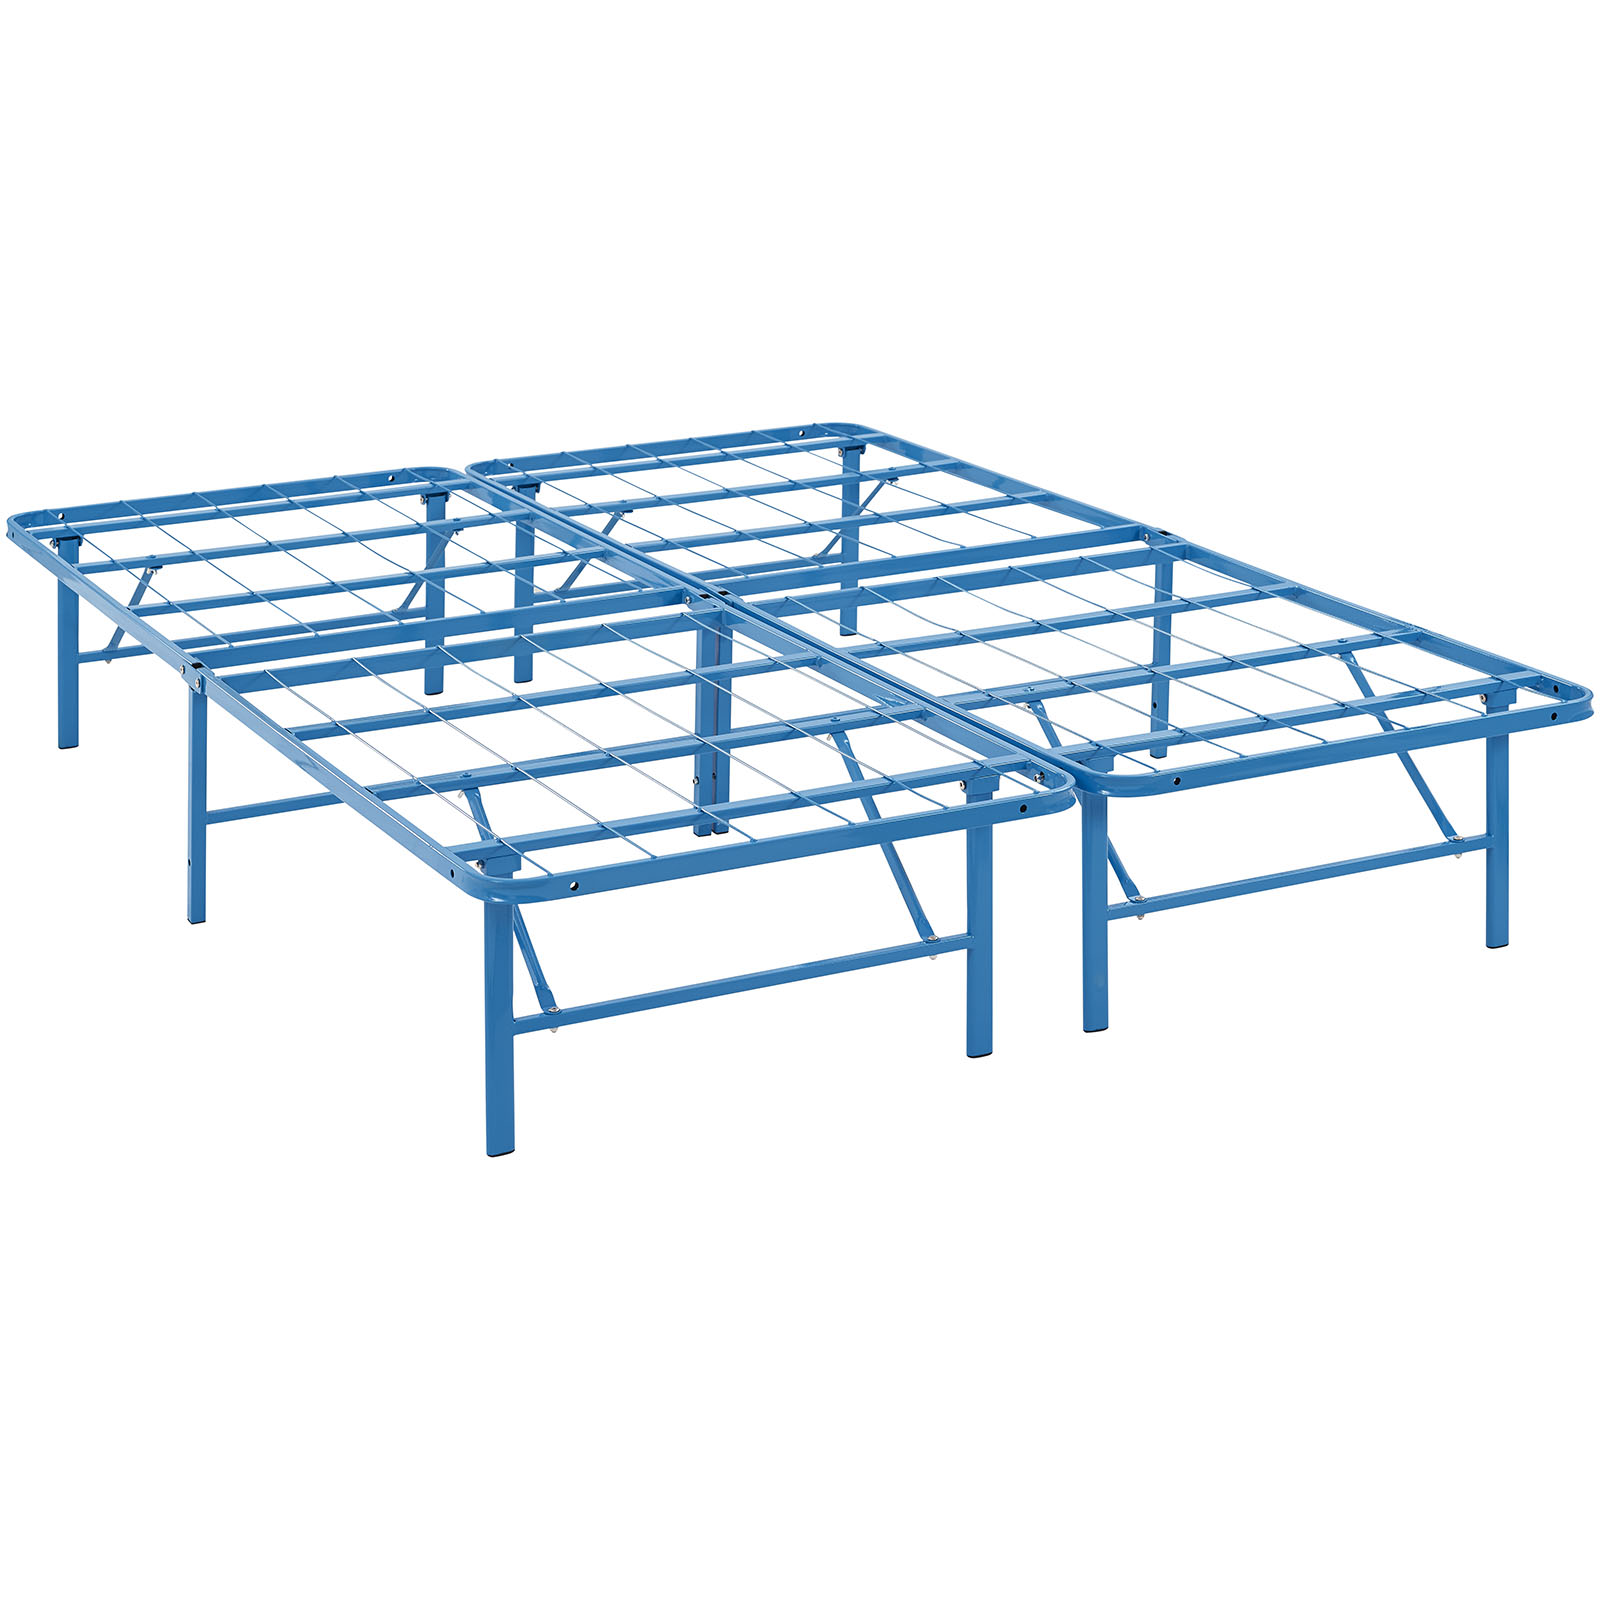 Modern Contemporary Urban Design Bedroom Queen Size Platform Bed Frame, Blue, Metal Steel